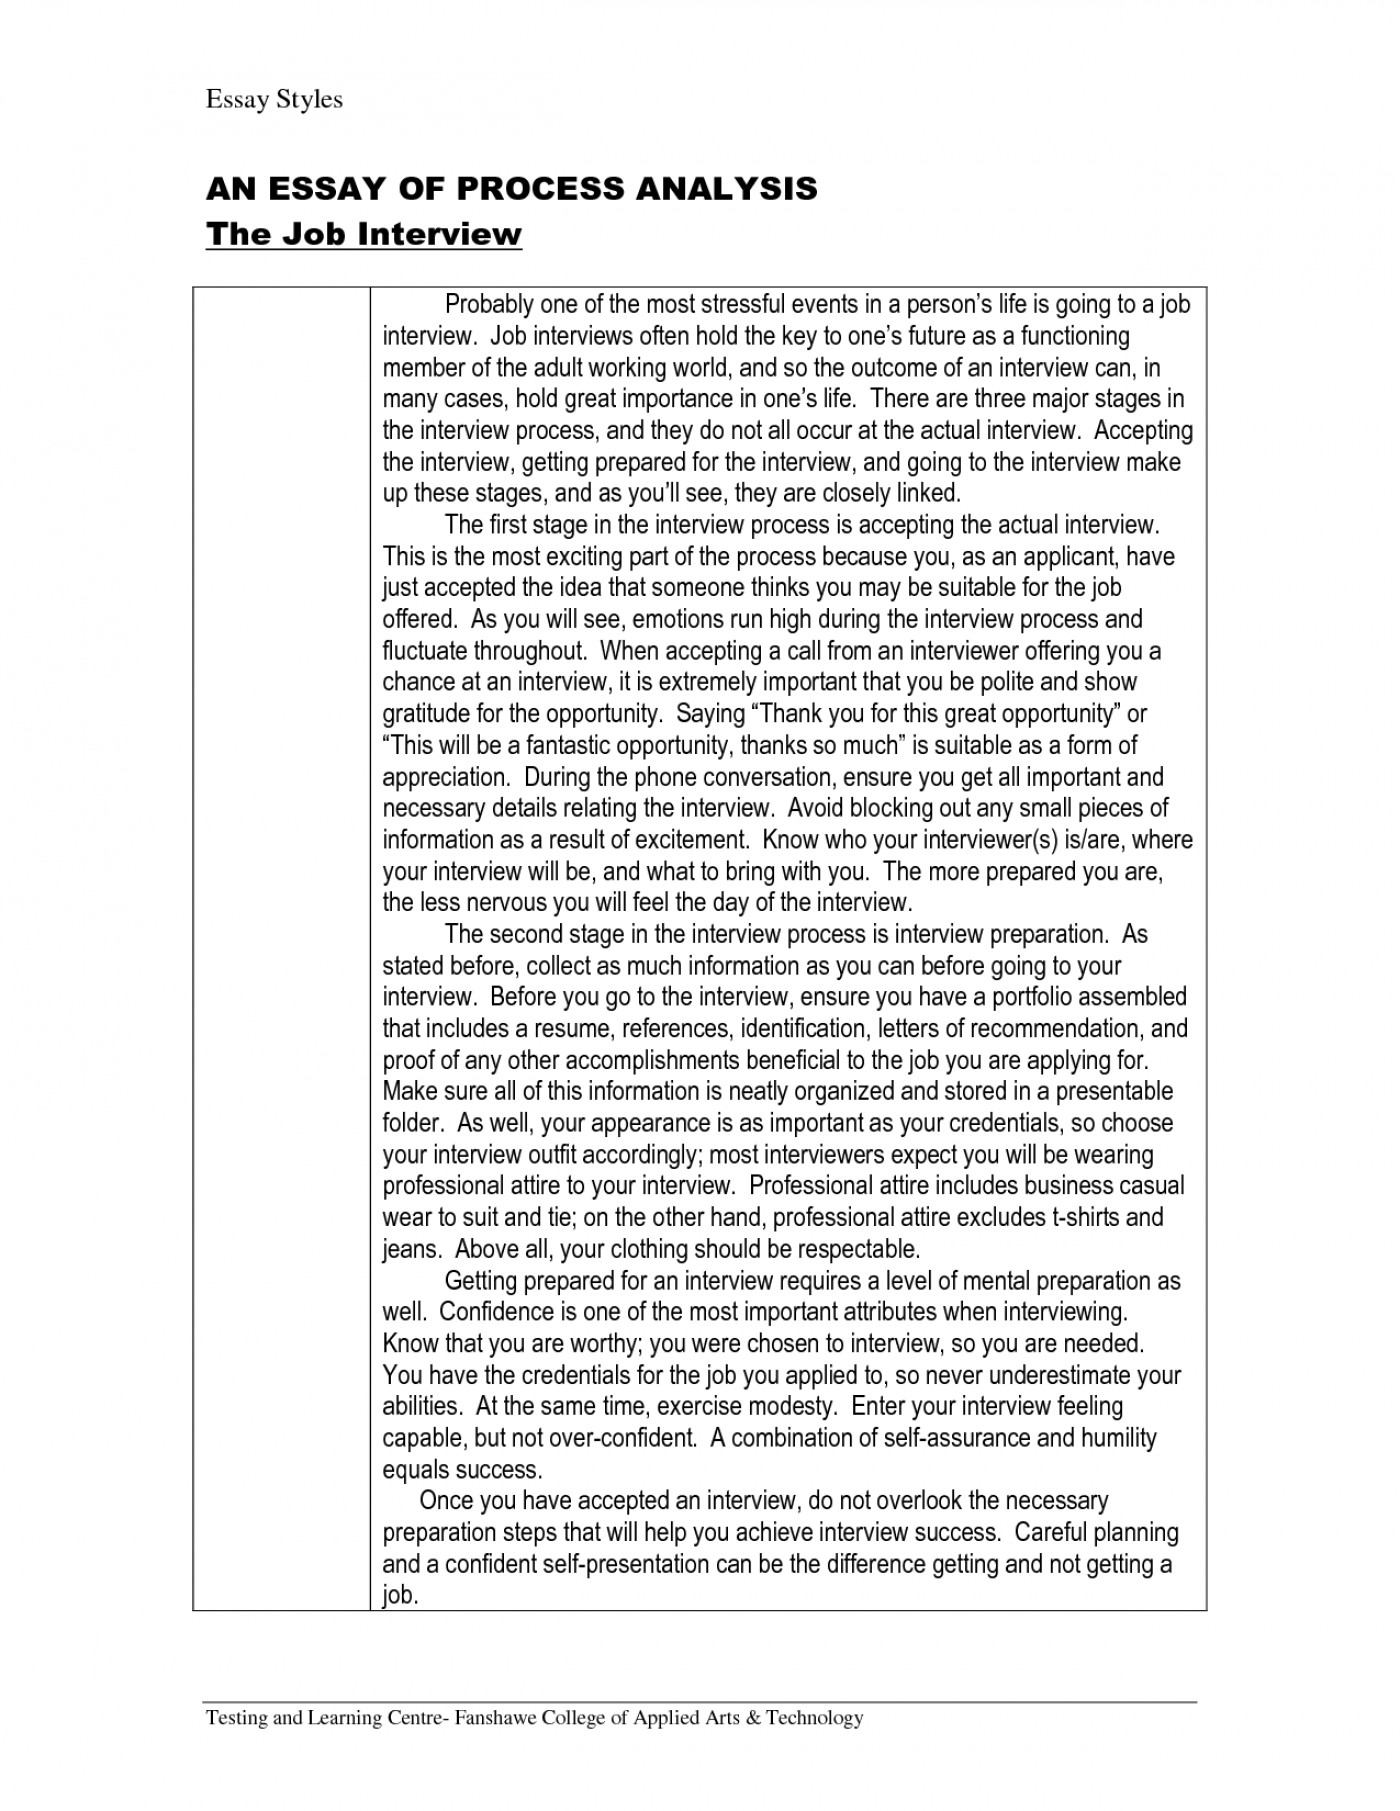 001 how to write an interview essay  thatsnotus